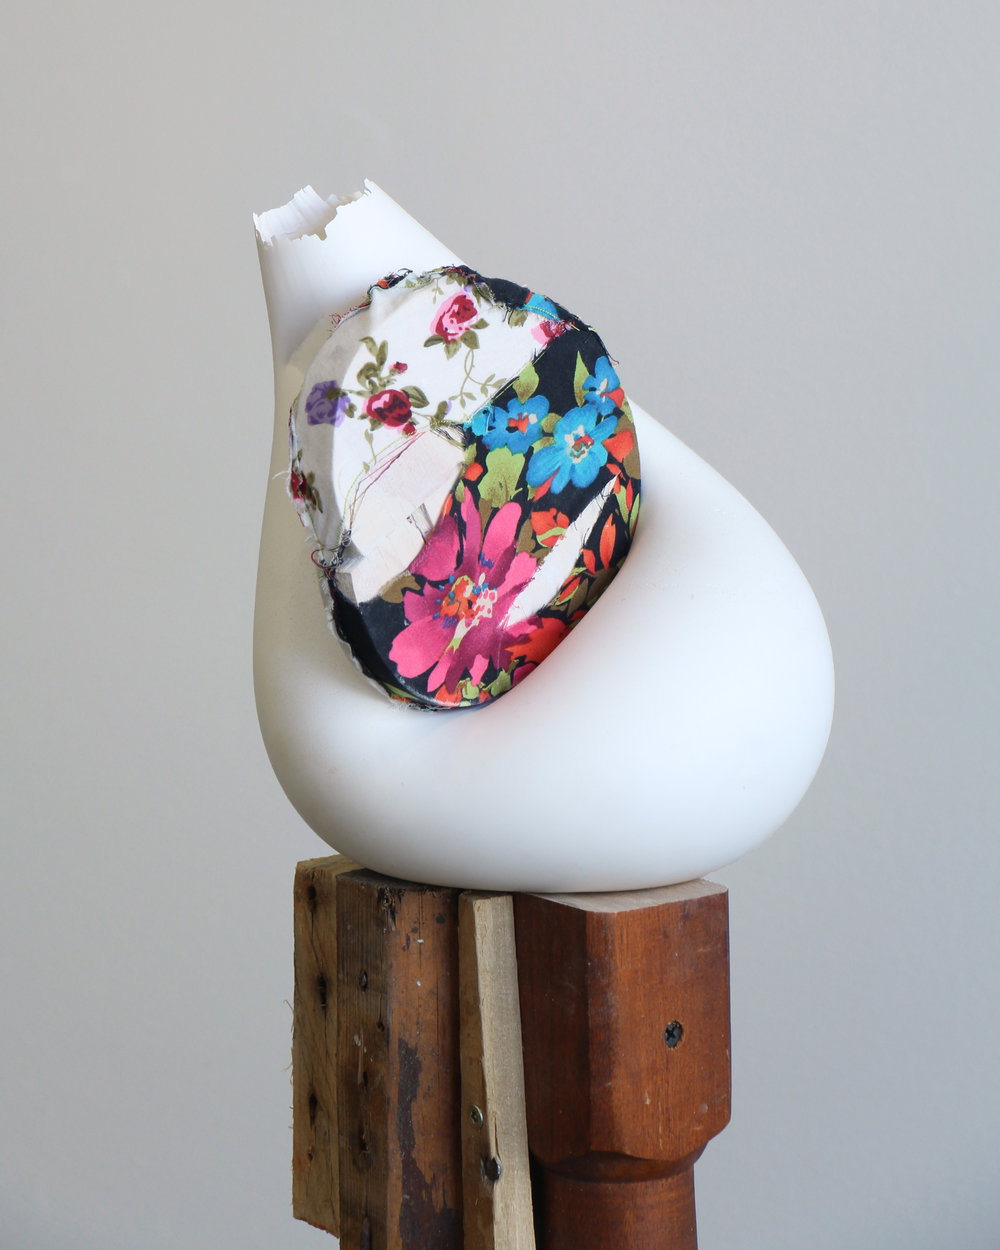 And as Honeysuckle Is Sweet so Is This Flower Salt, 2016 plaster, fabric, wood 8 x 7 x 6""